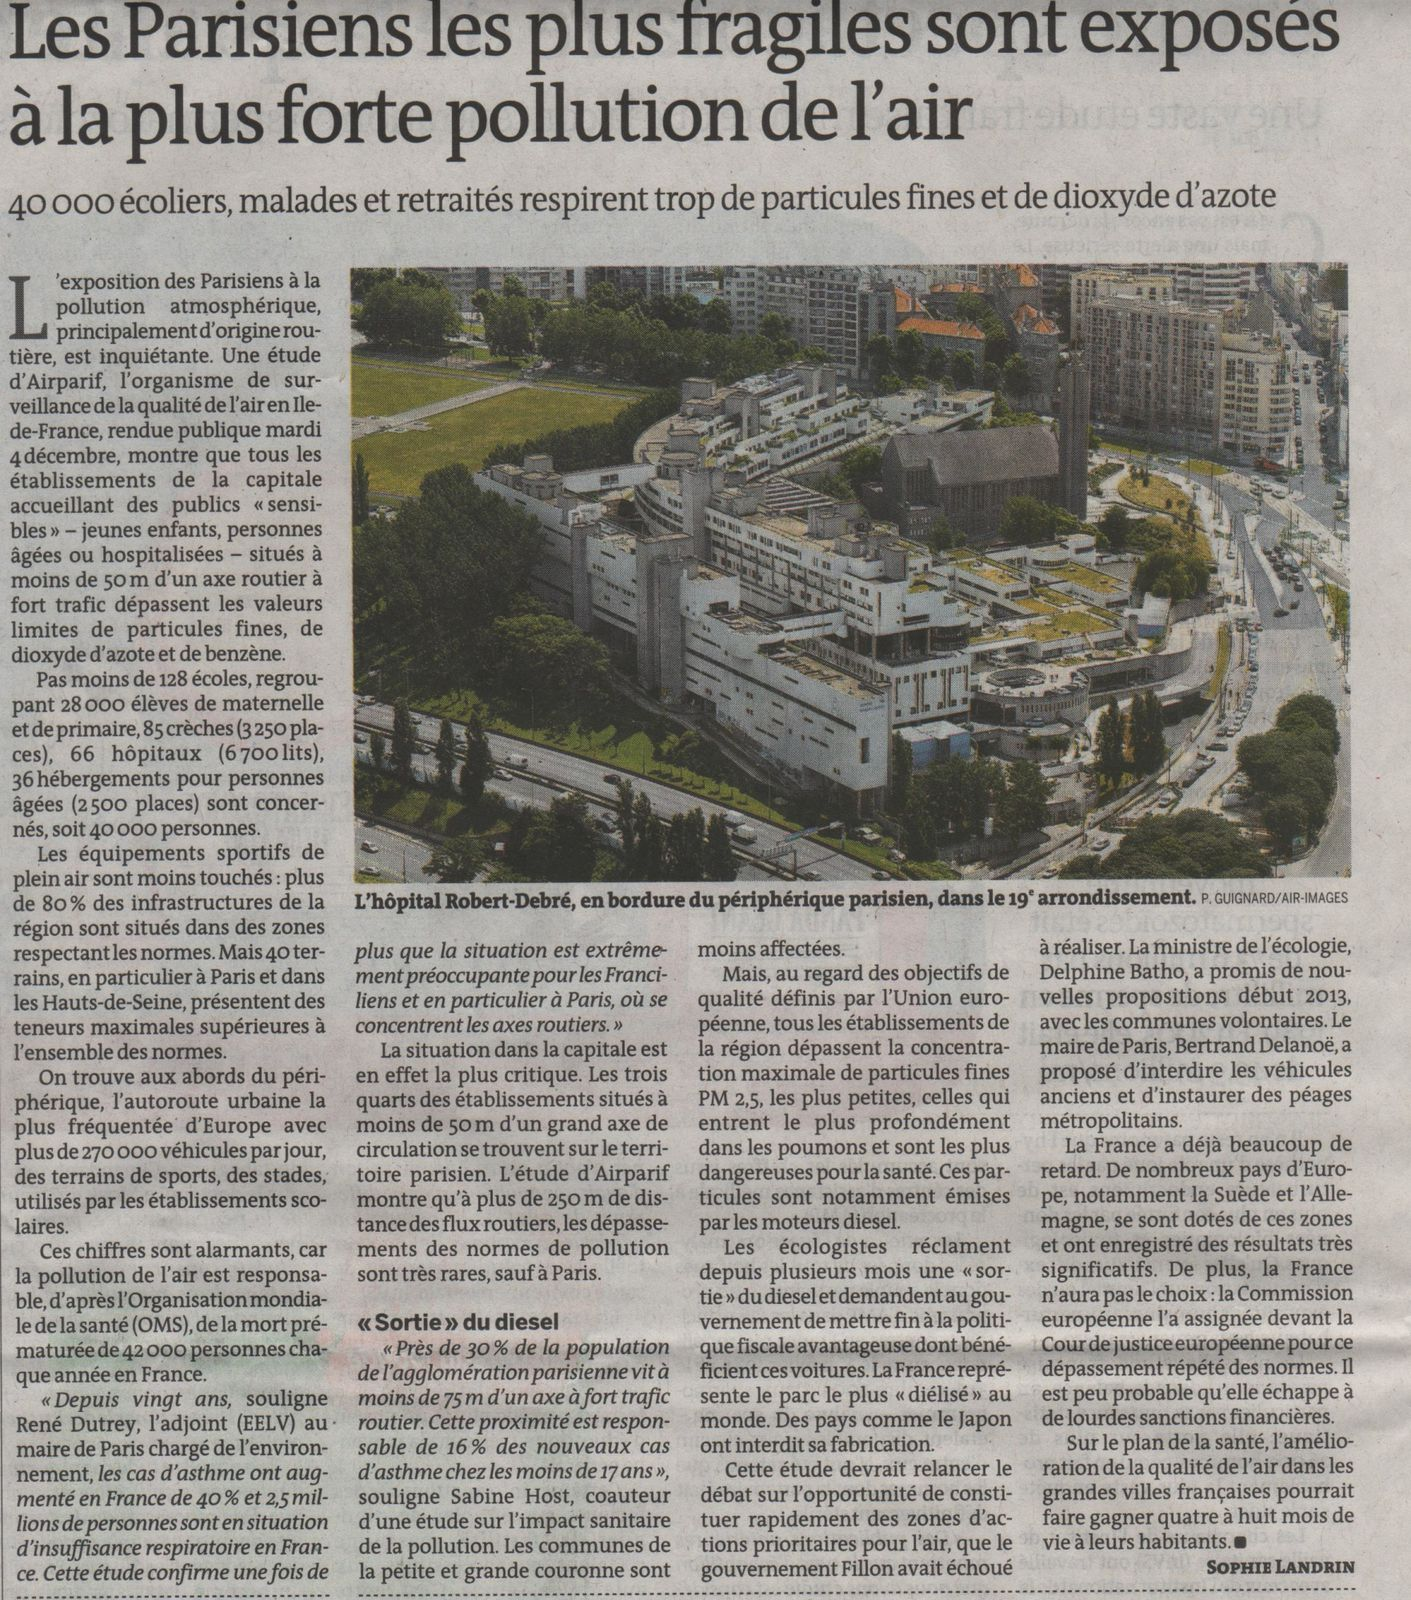 Paris Pollution air 1 - Le monde - 6-12-2012